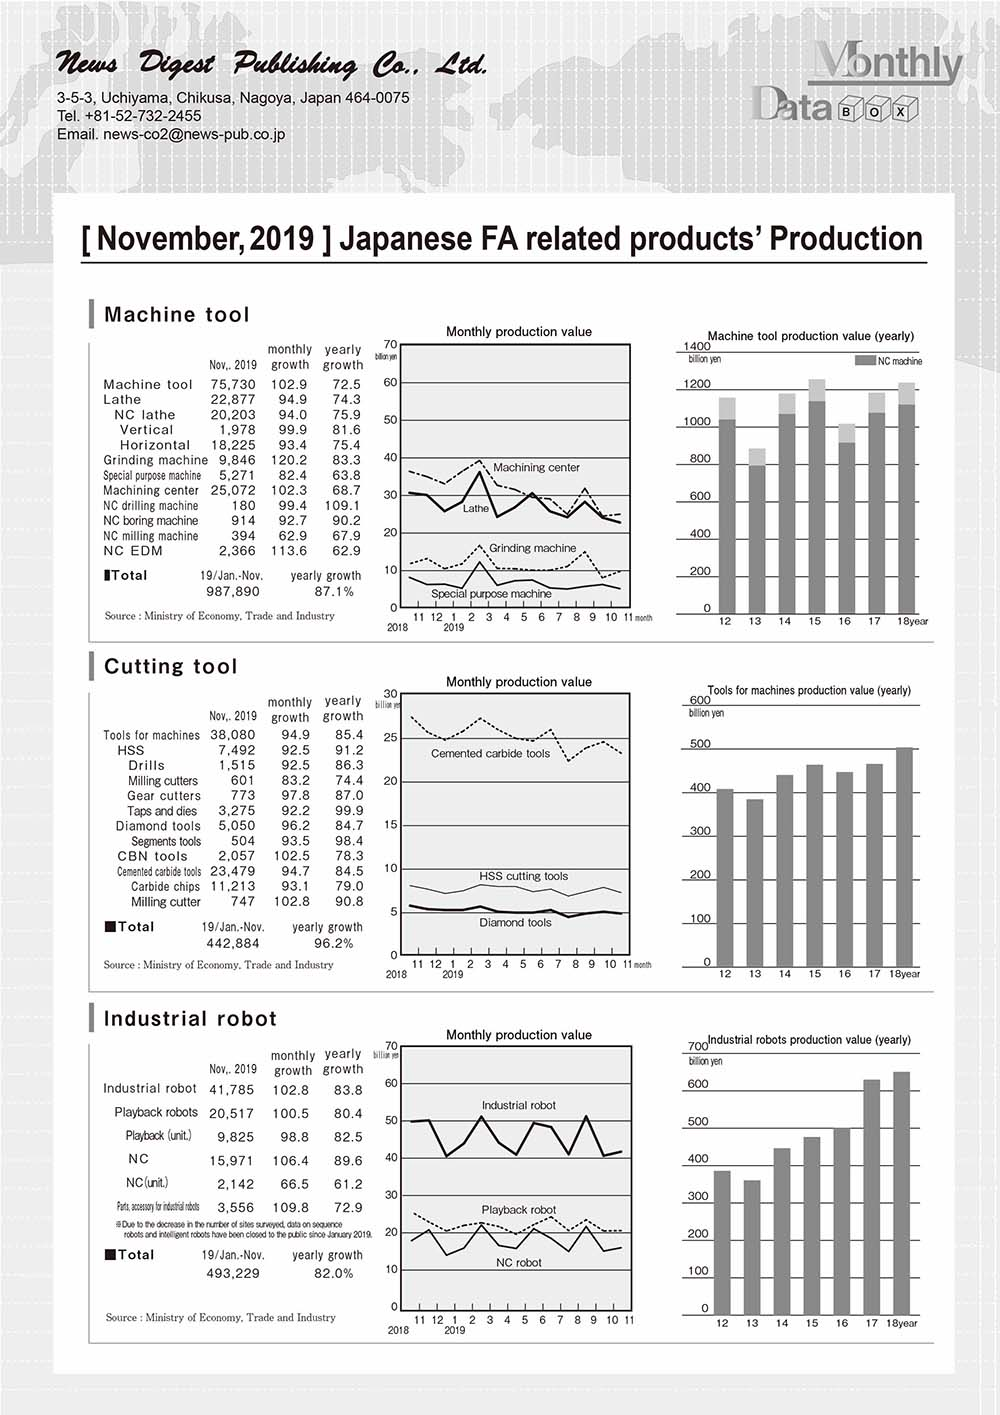 [November, 2019 ] Japanese FA related products' Production